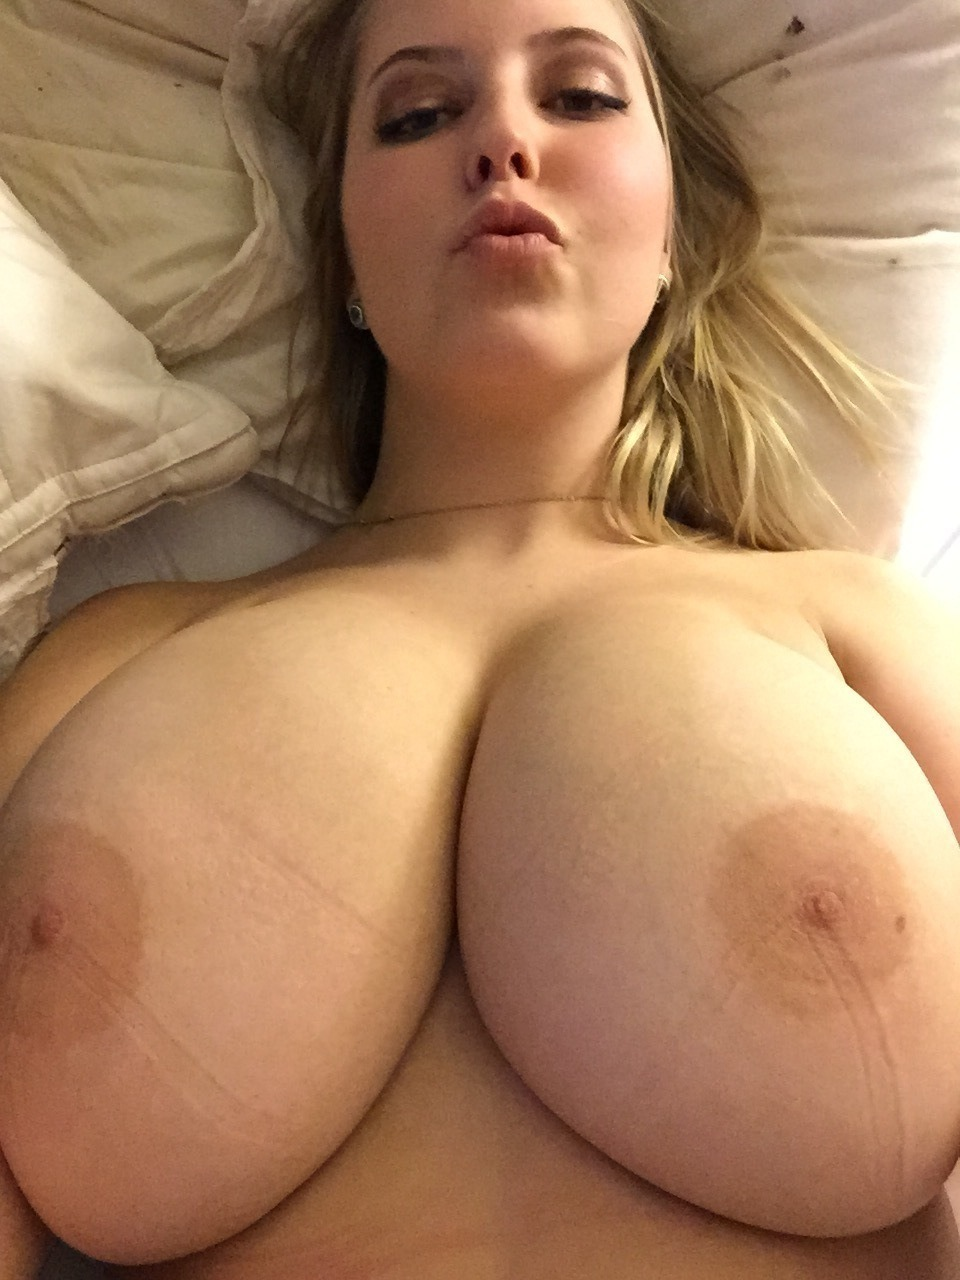 Hot Amateur Babes With Huge Natural Tits